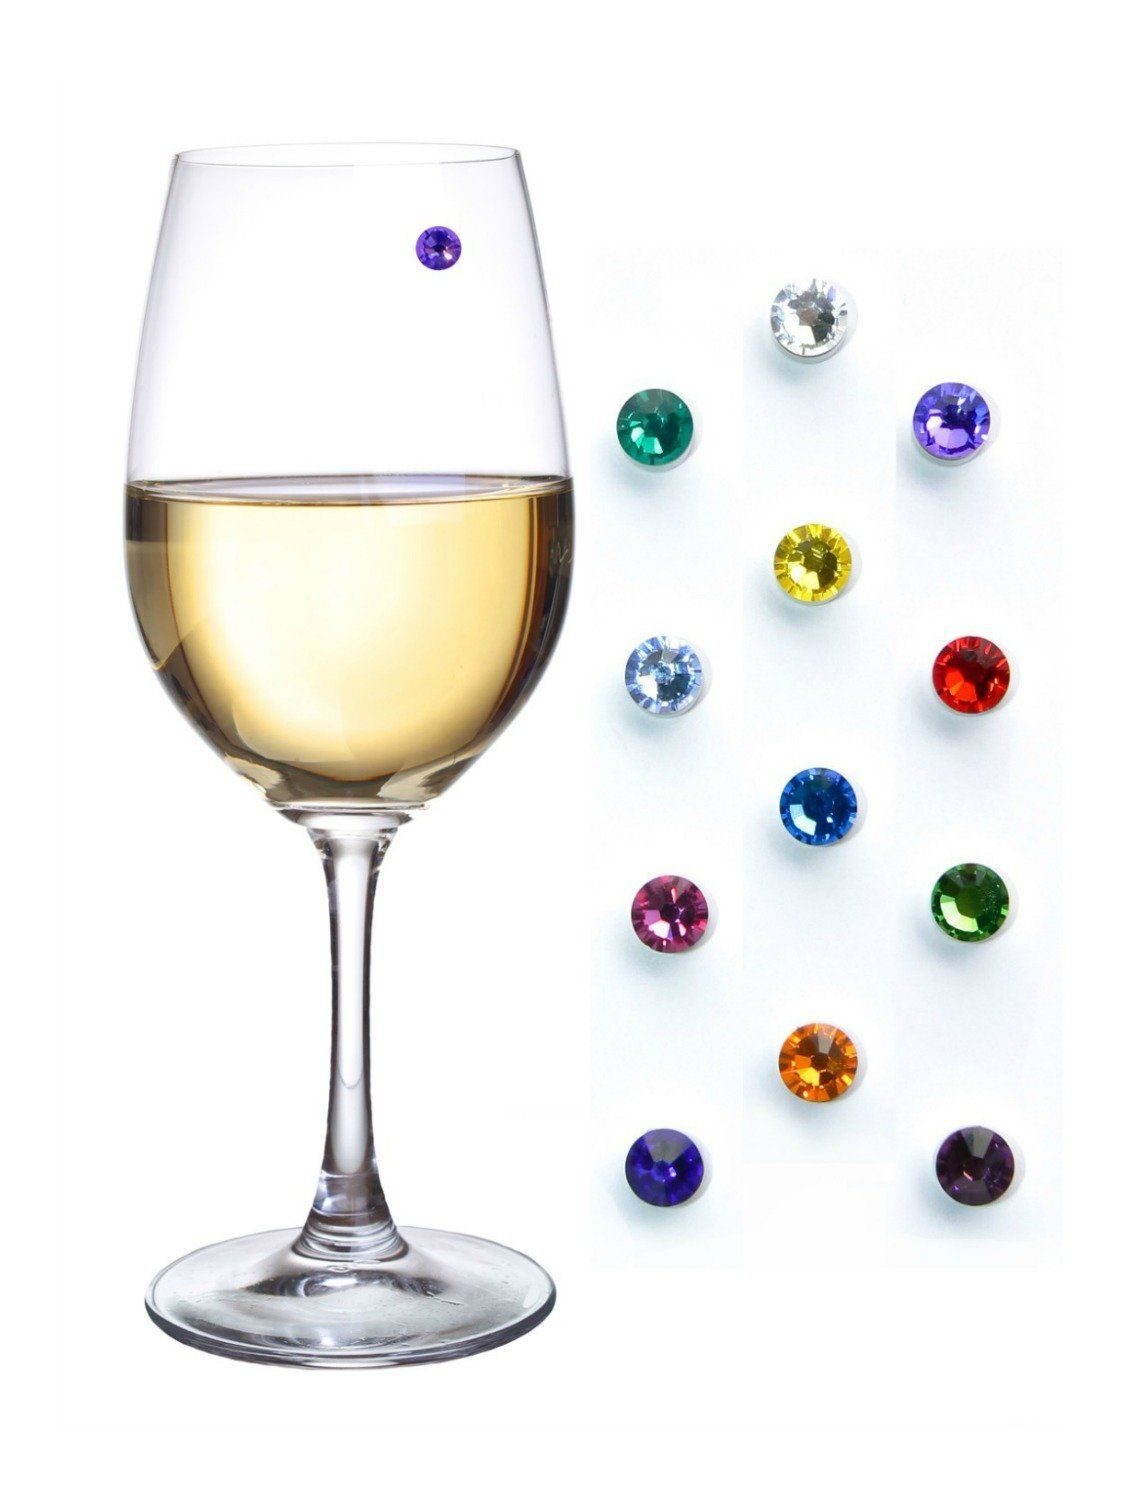 Swarovski Crystal Magnetic Wine Glass Charms Storage Box Included Wineglasstags Glassmarkers Artsy Tags Wine Glass Charms Glass Marker Wine Glass Tags